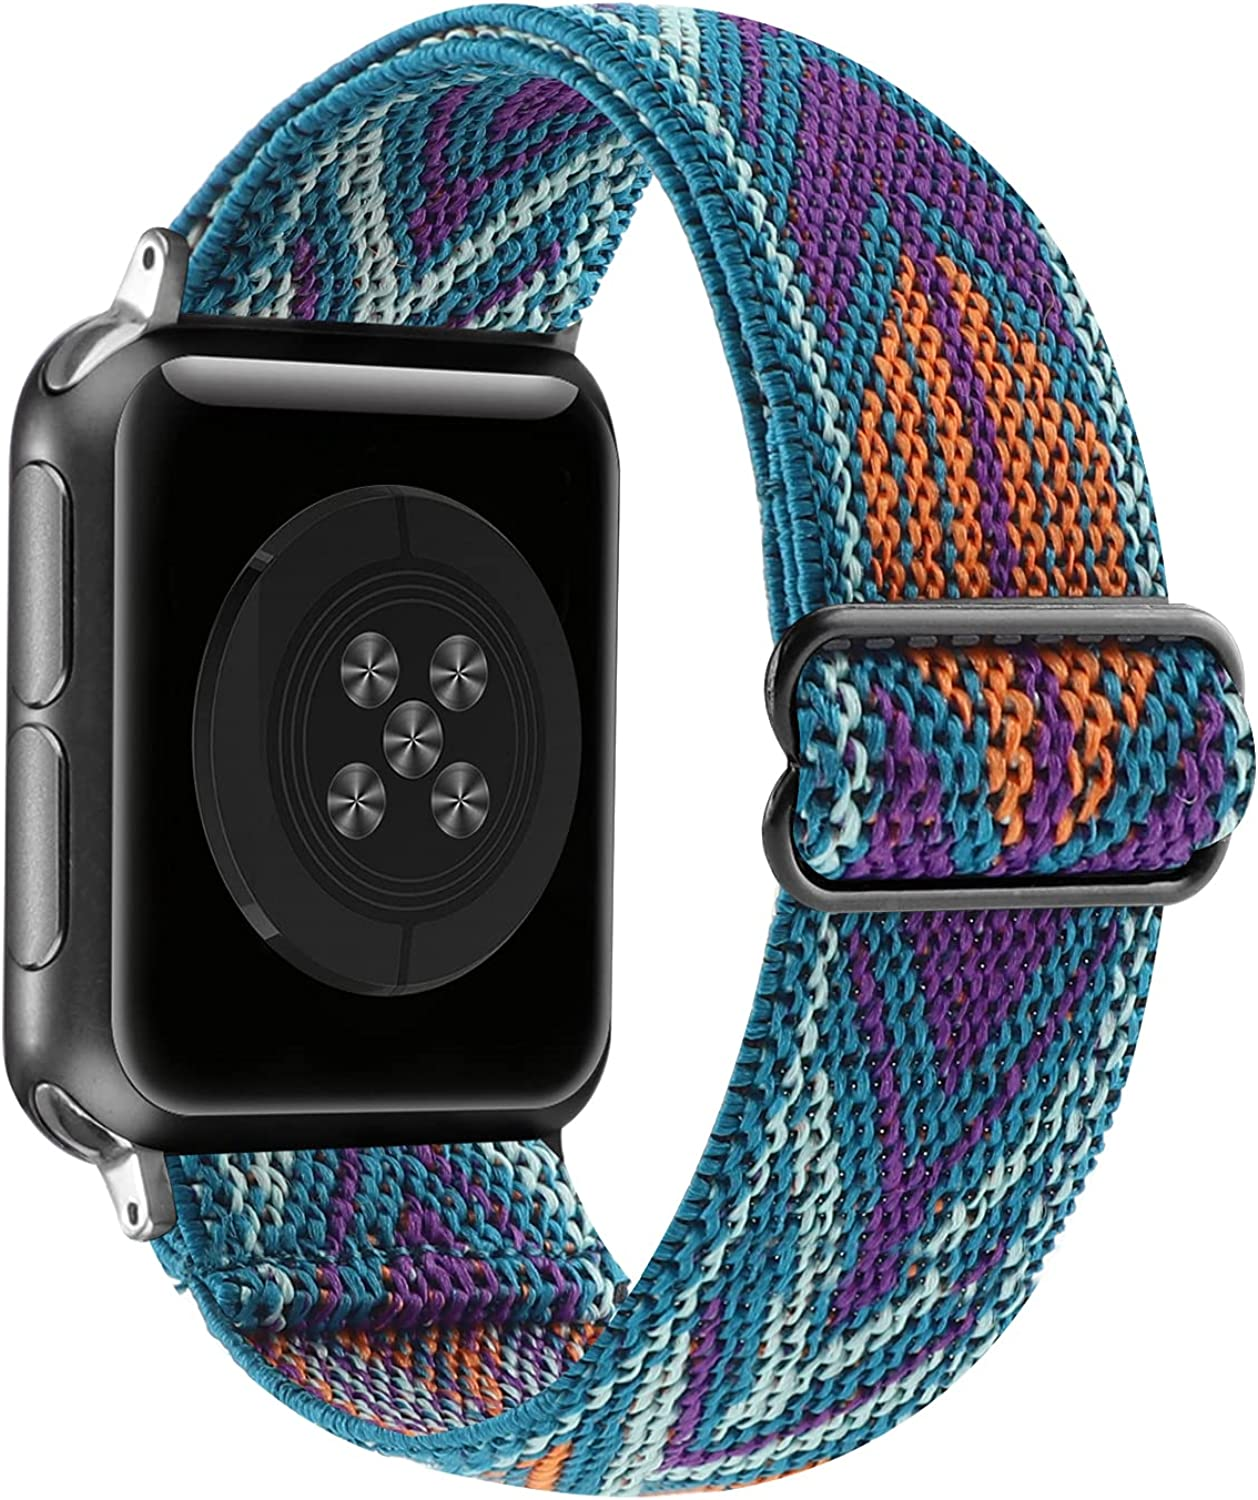 Adjustable Stretchy Solo Loop Nylon Strap Compatible with Apple Watch Elastic Band 38mm 40mm 42mm 44mm iWatch Series SE/6/5/4/3/2/1